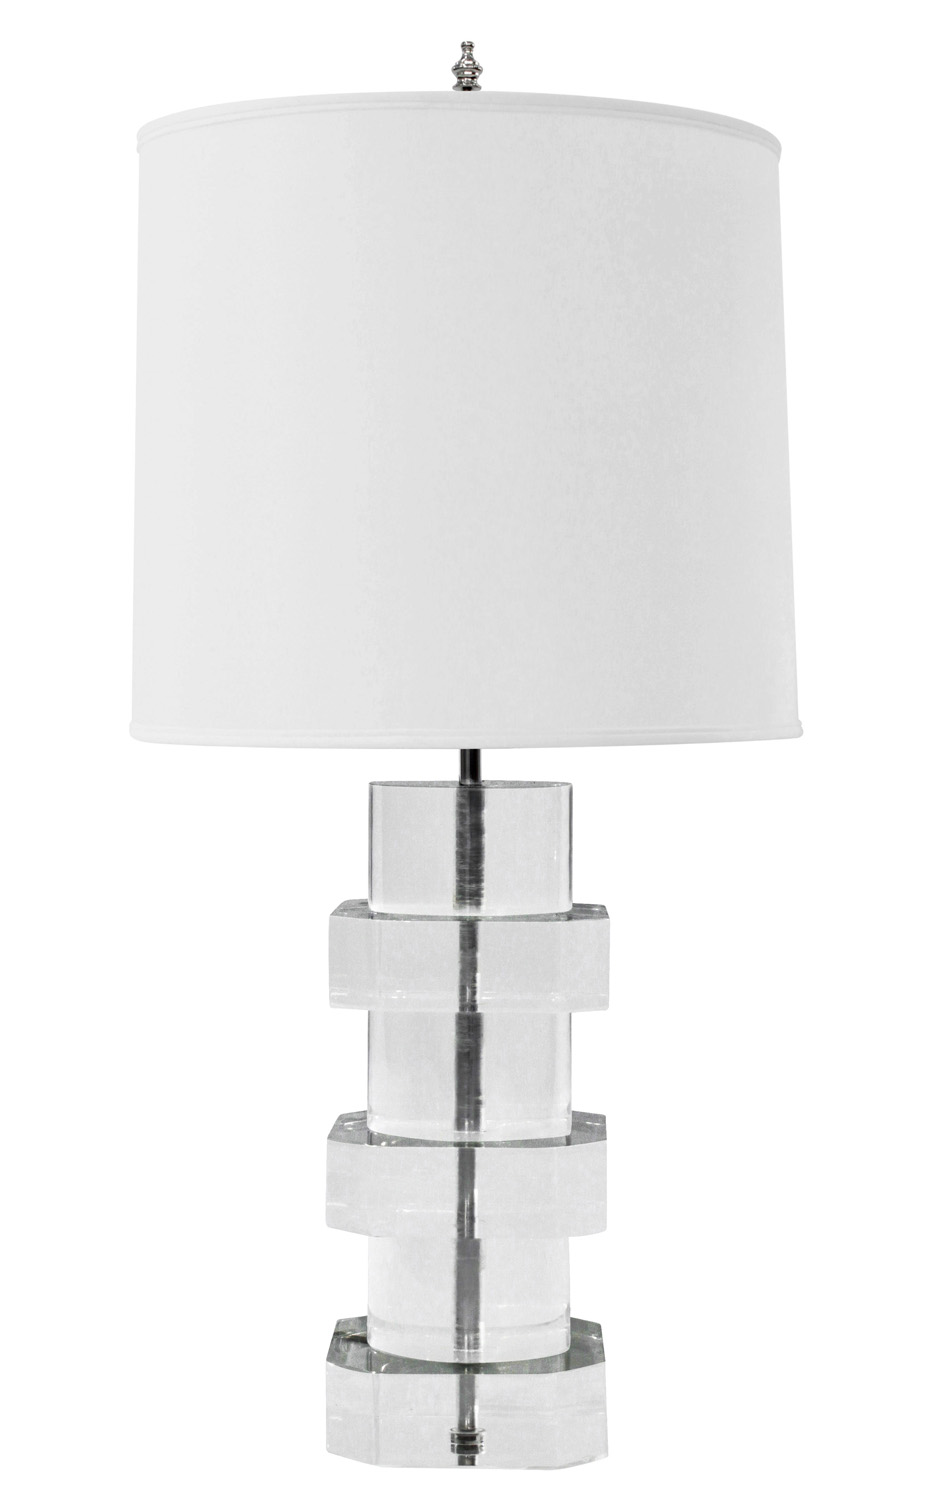 Springer 85 lucite rnd+8sided tablelamp326 hires.jpg